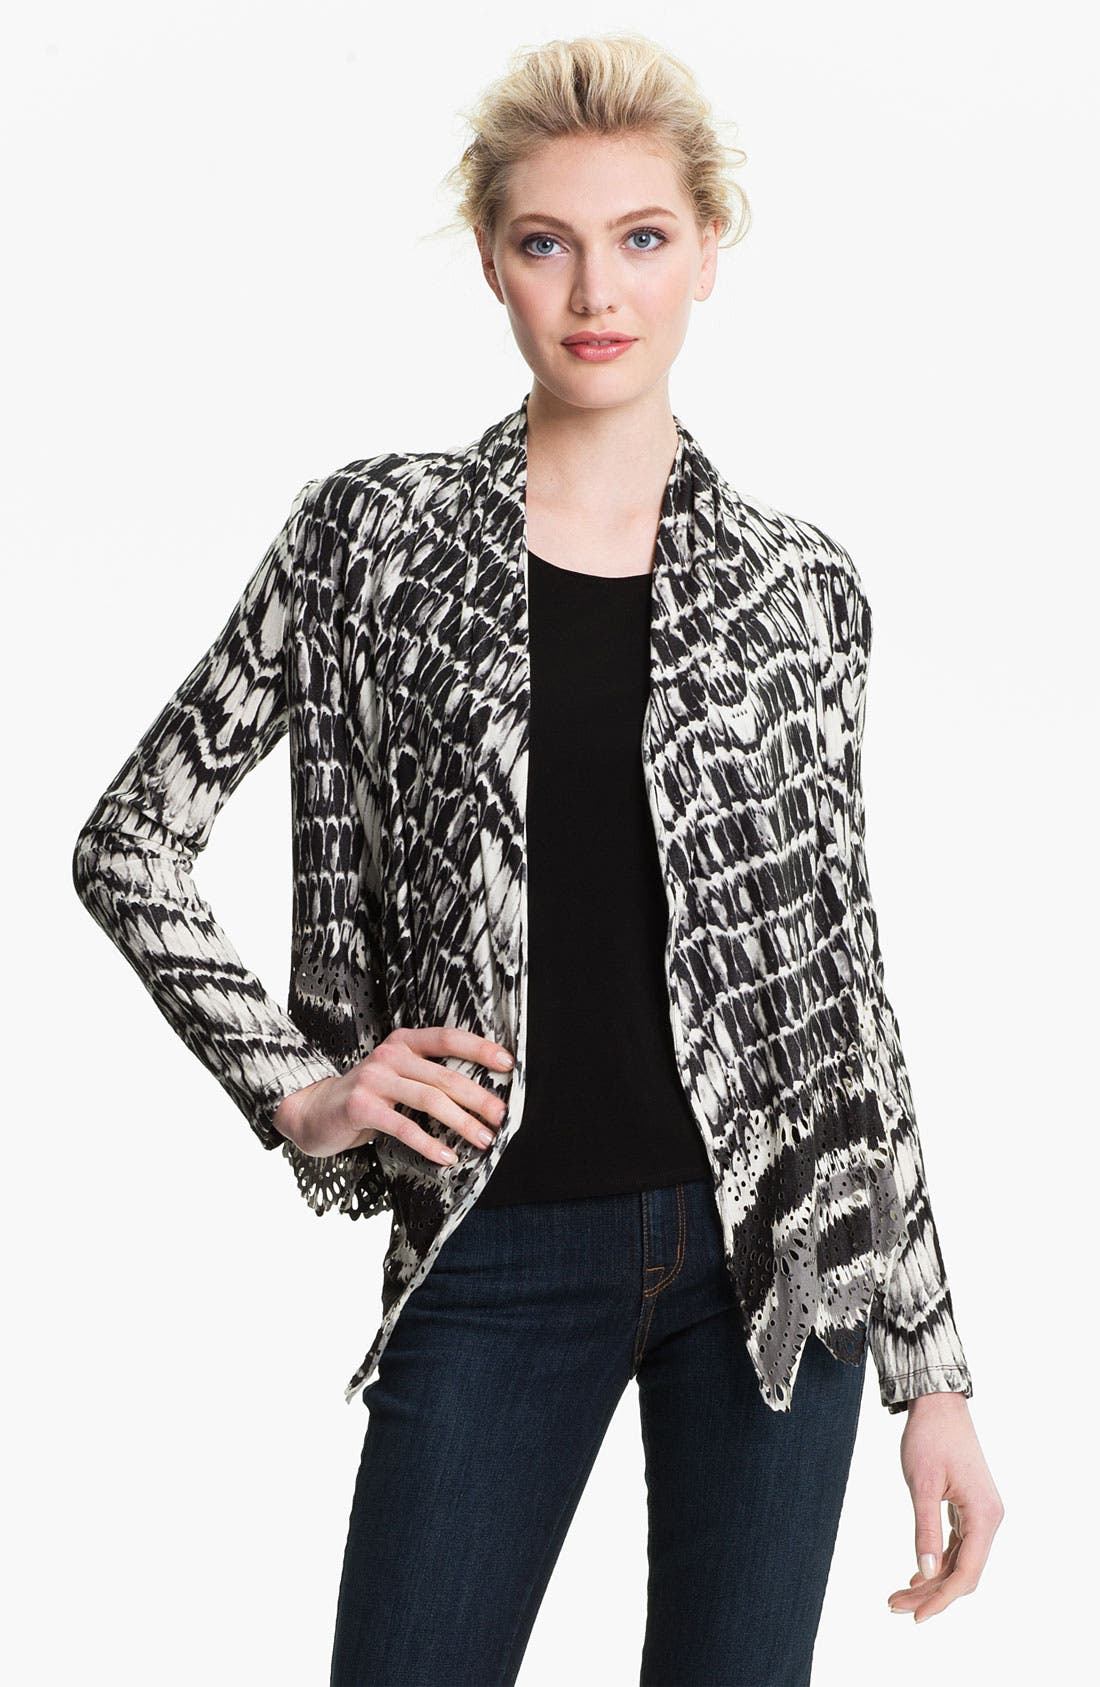 Alternate Image 1 Selected - Alberto Makali Perforated Print Cardigan